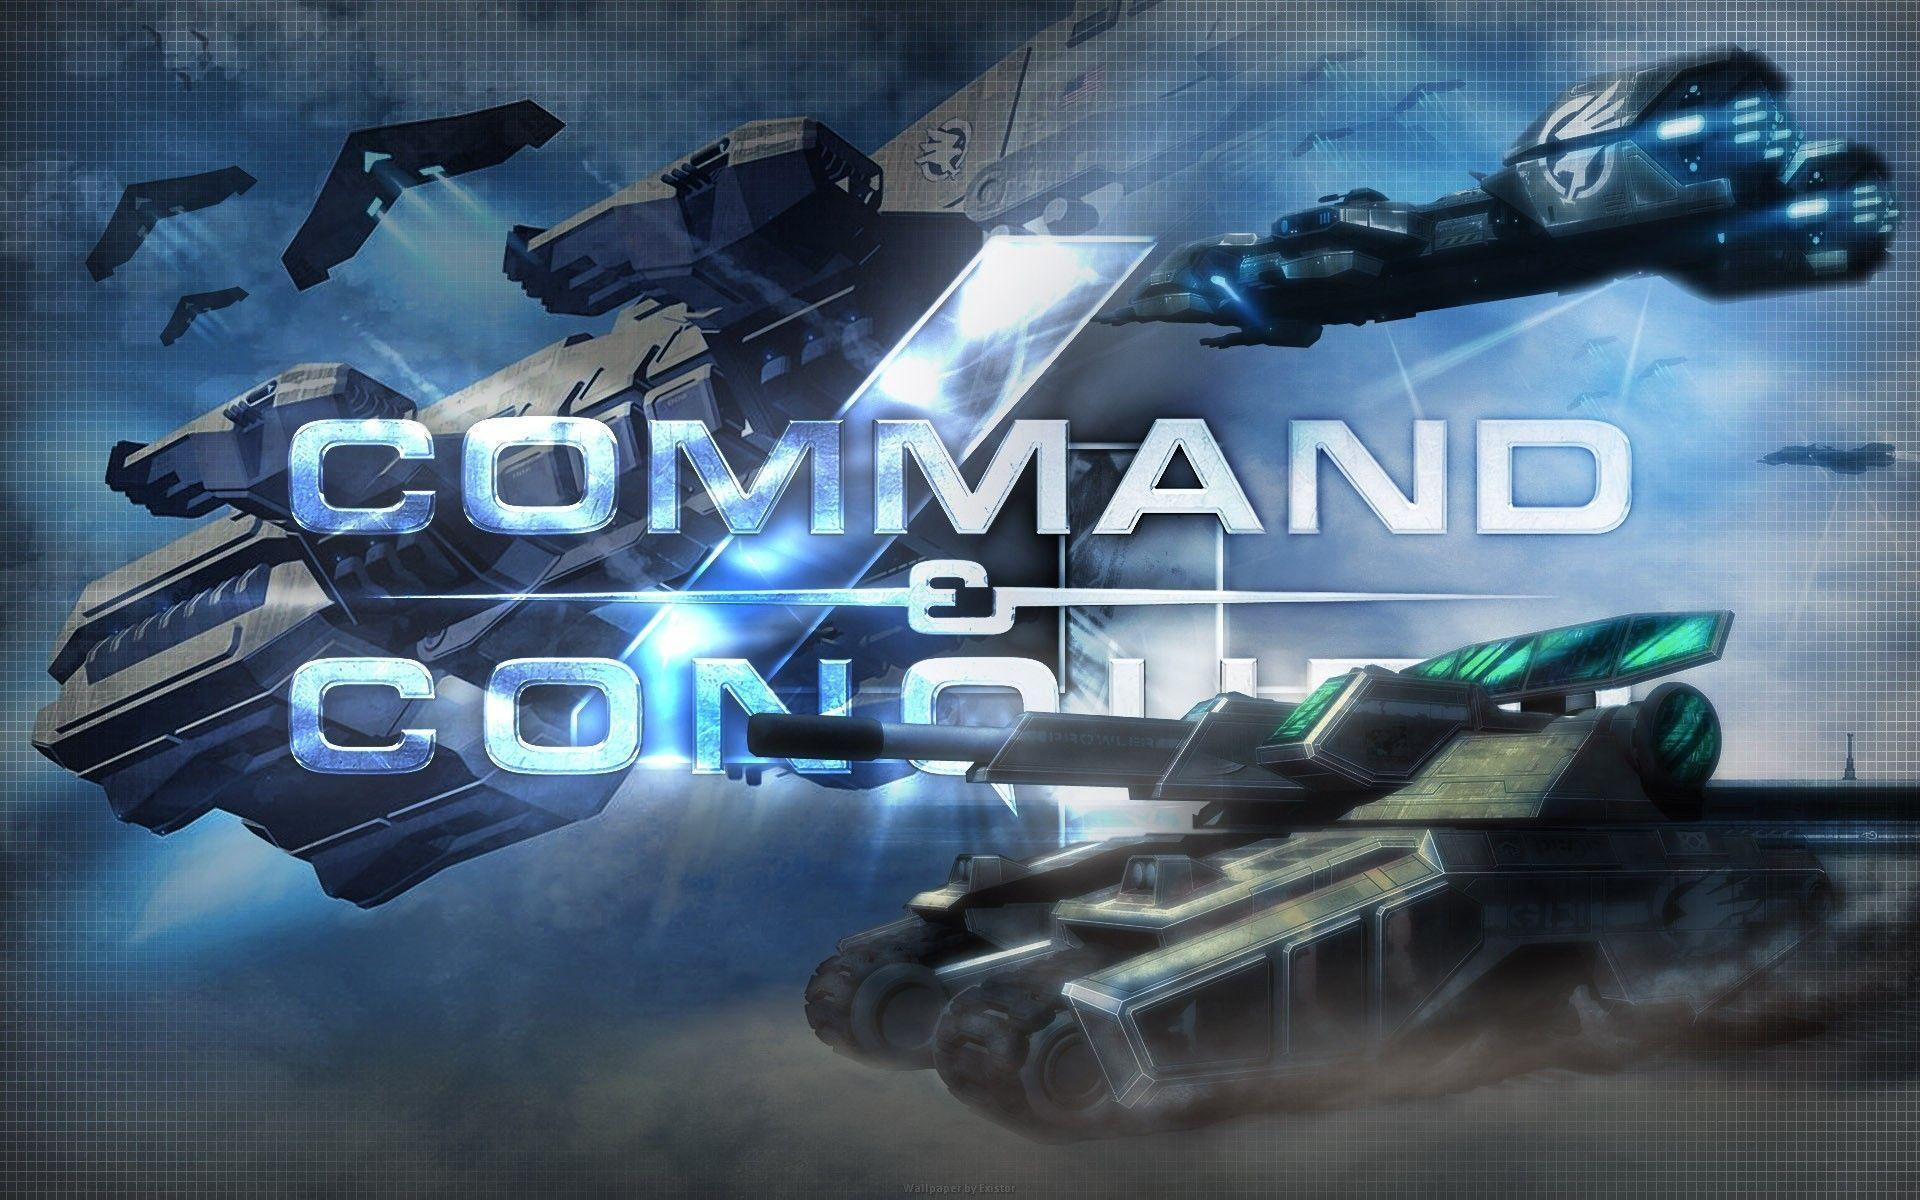 Command And Conquer 4 wallpaper - 87171